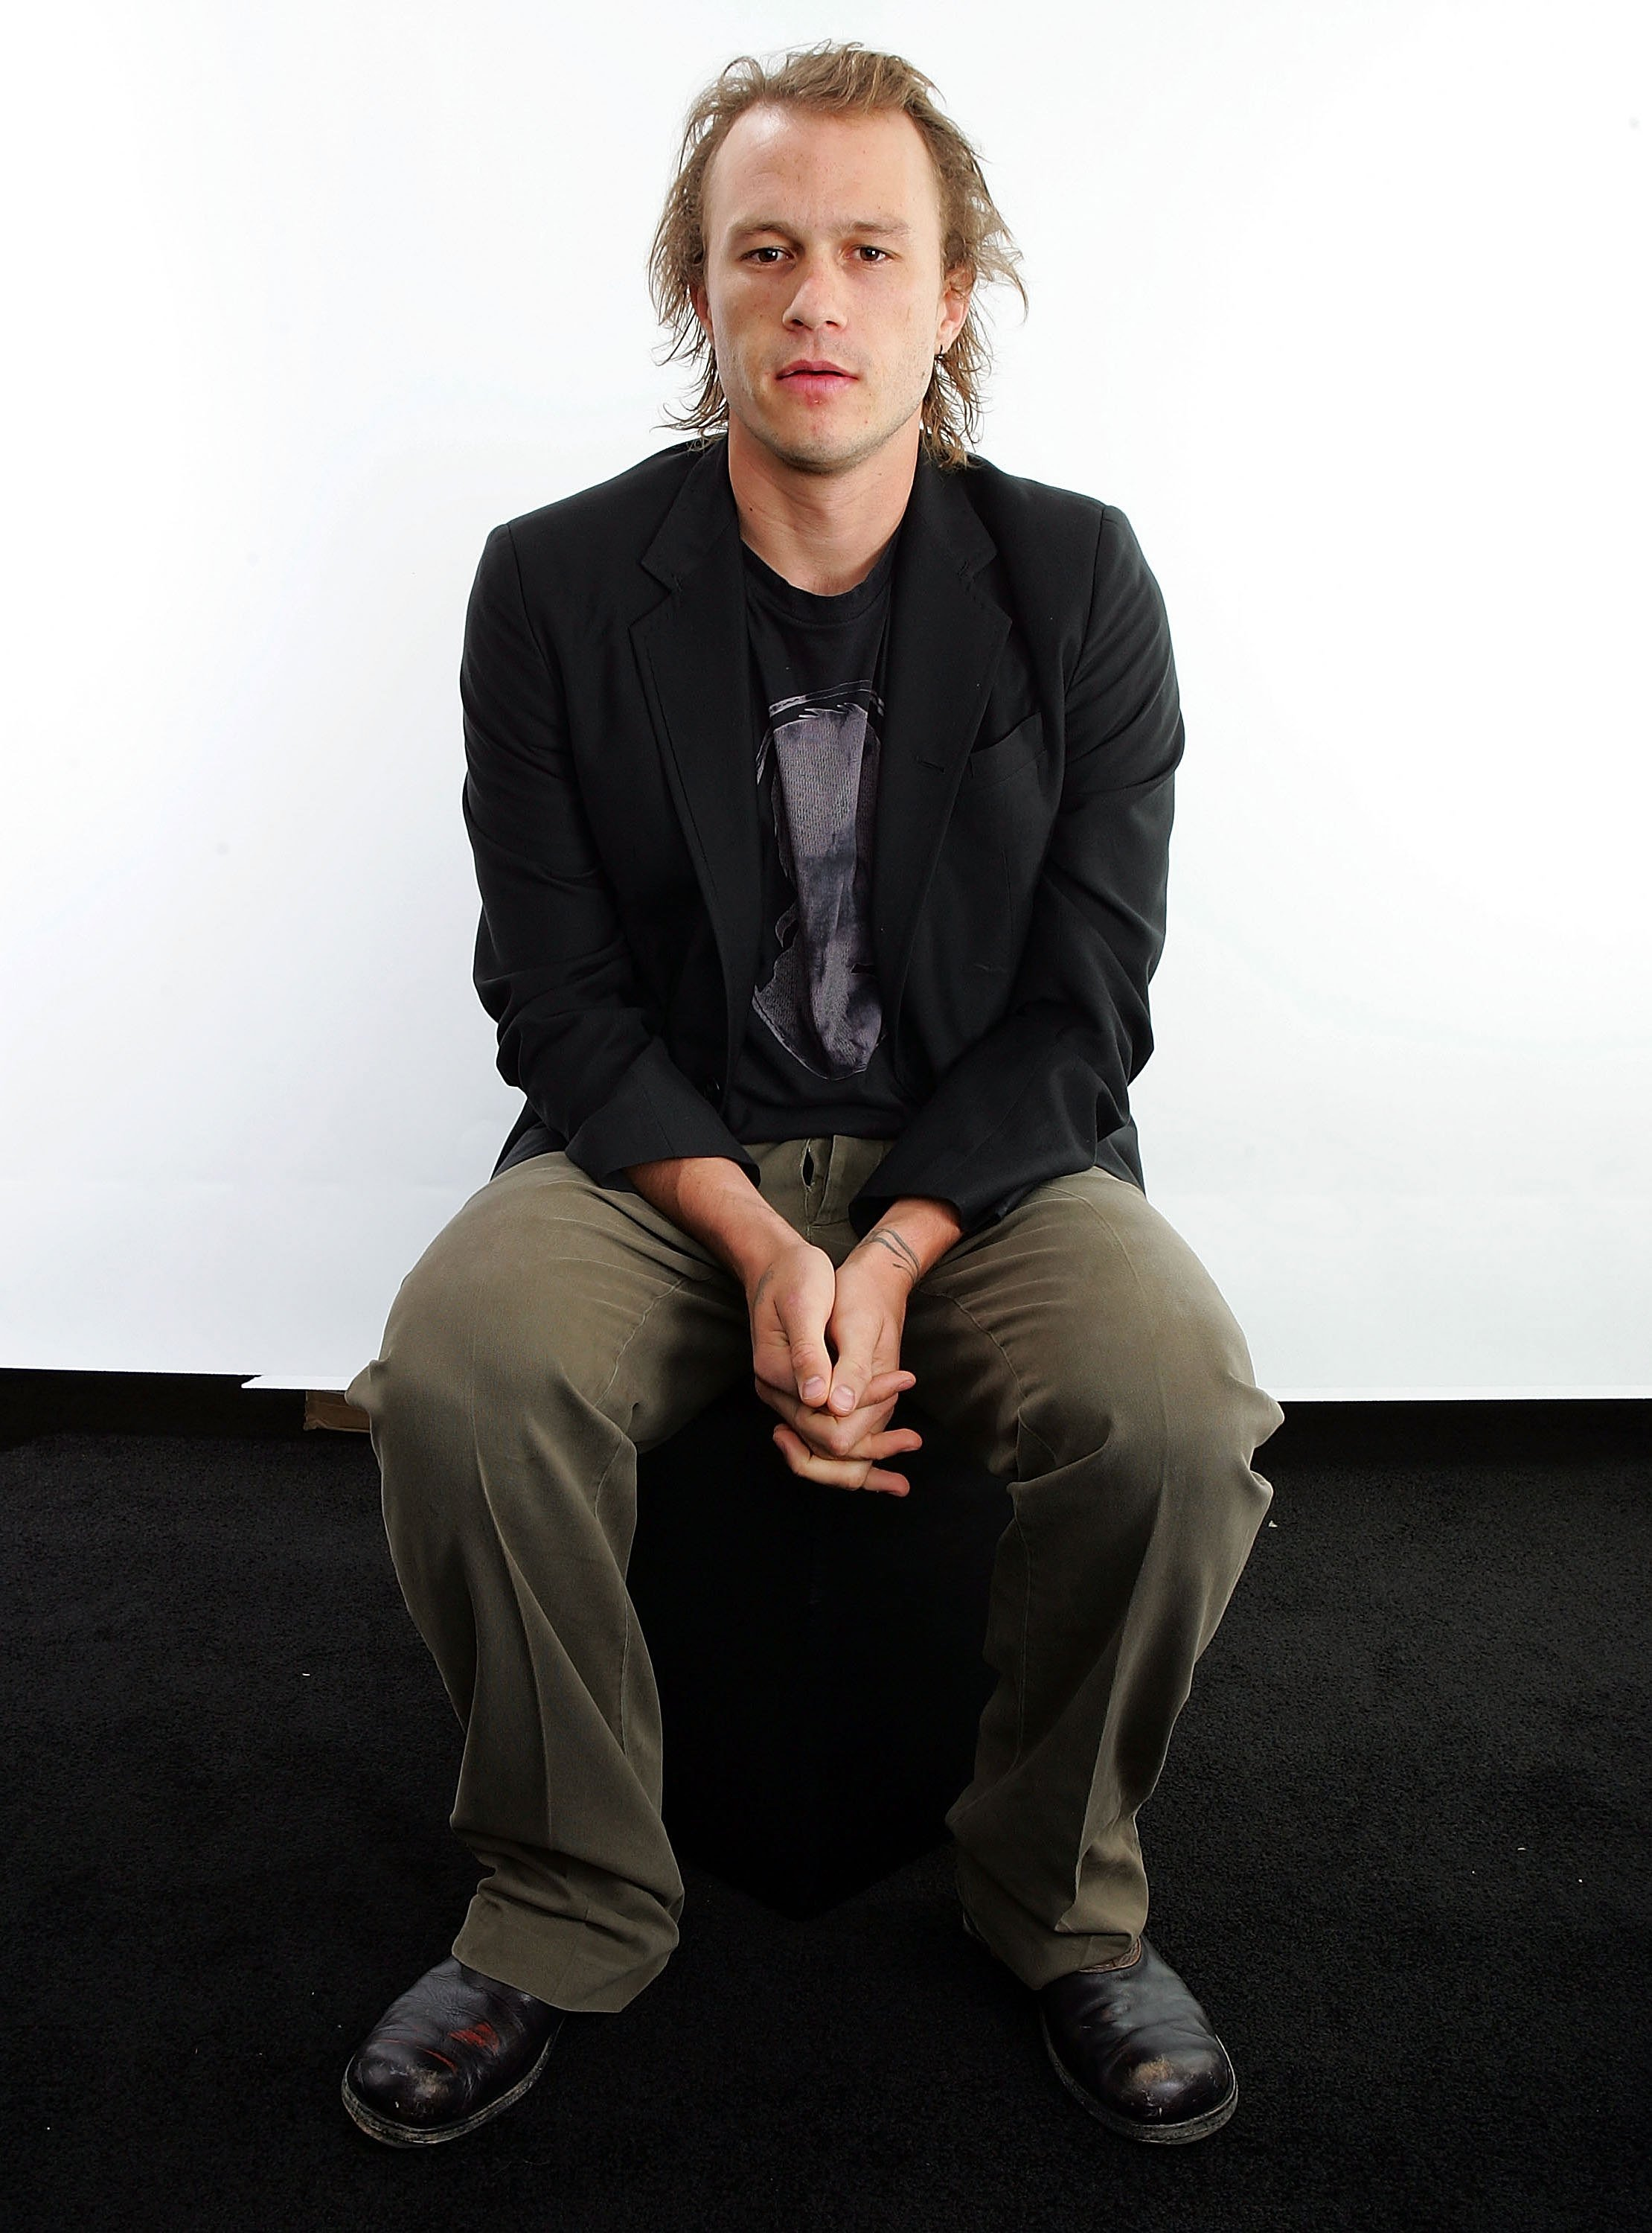 Heath Ledger posing for portraits in the Chanel Celebrity Suite at the Four Season hotel during the Toronto International Film Festival in Toronto, Canada | Photo: Carlo Allegri/Getty Images